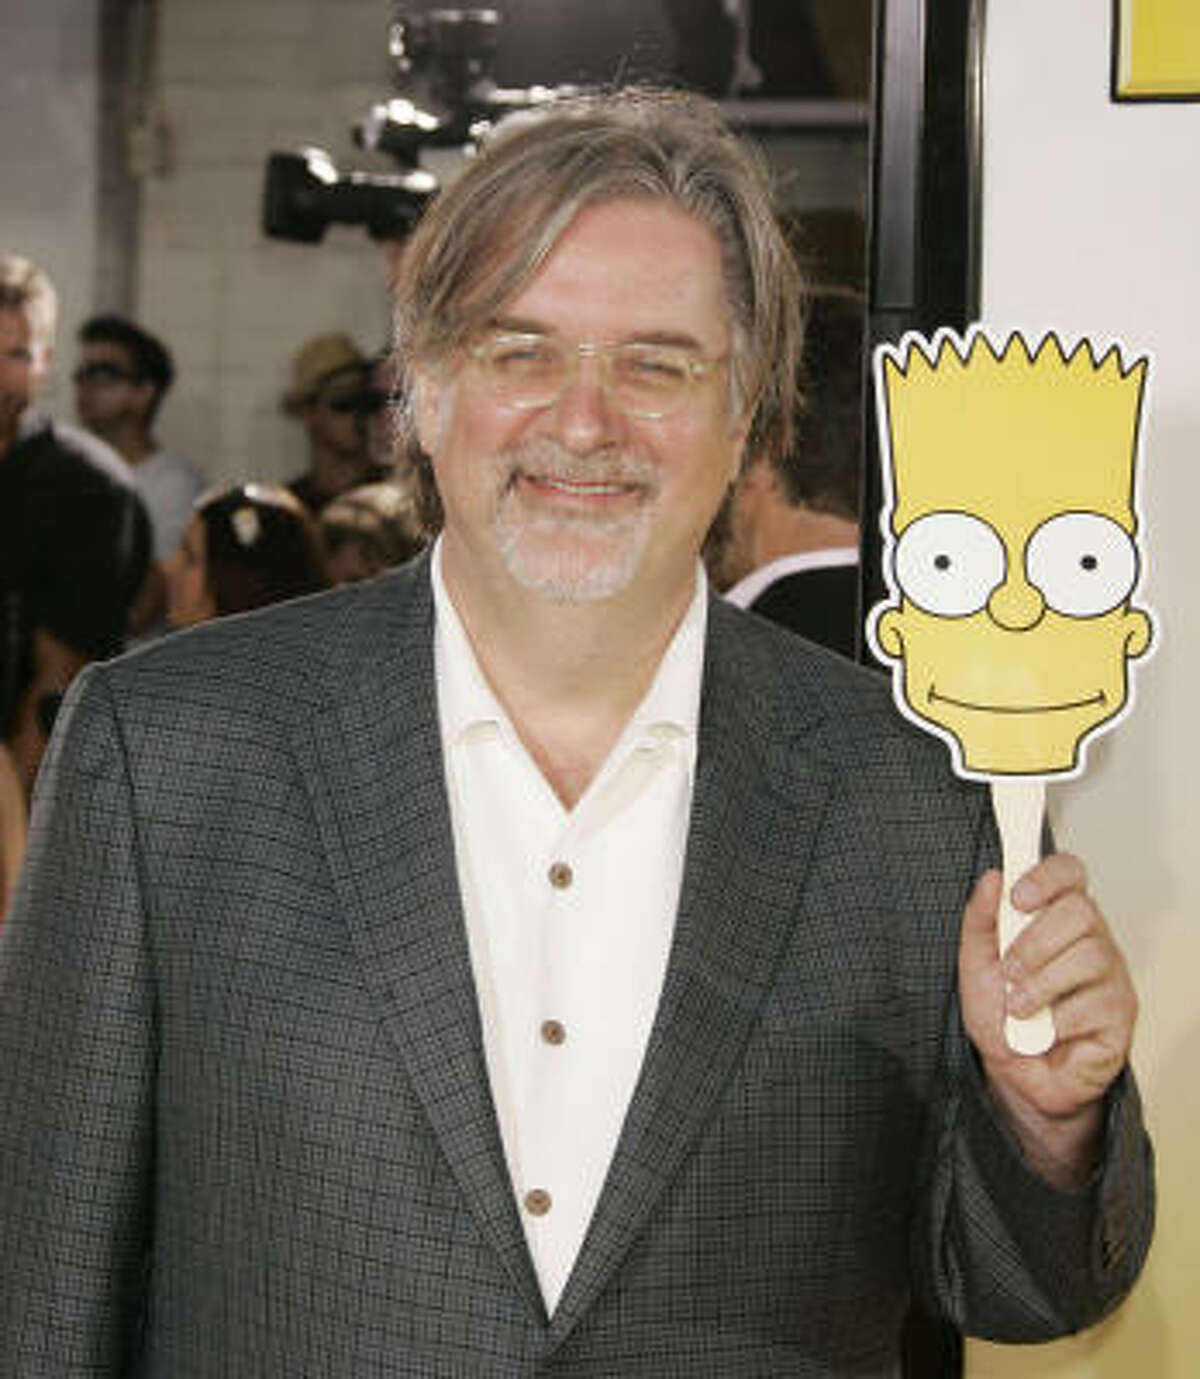 Creator of the Simpsons, Matt Groening, occasionally drops references to Star Trek.